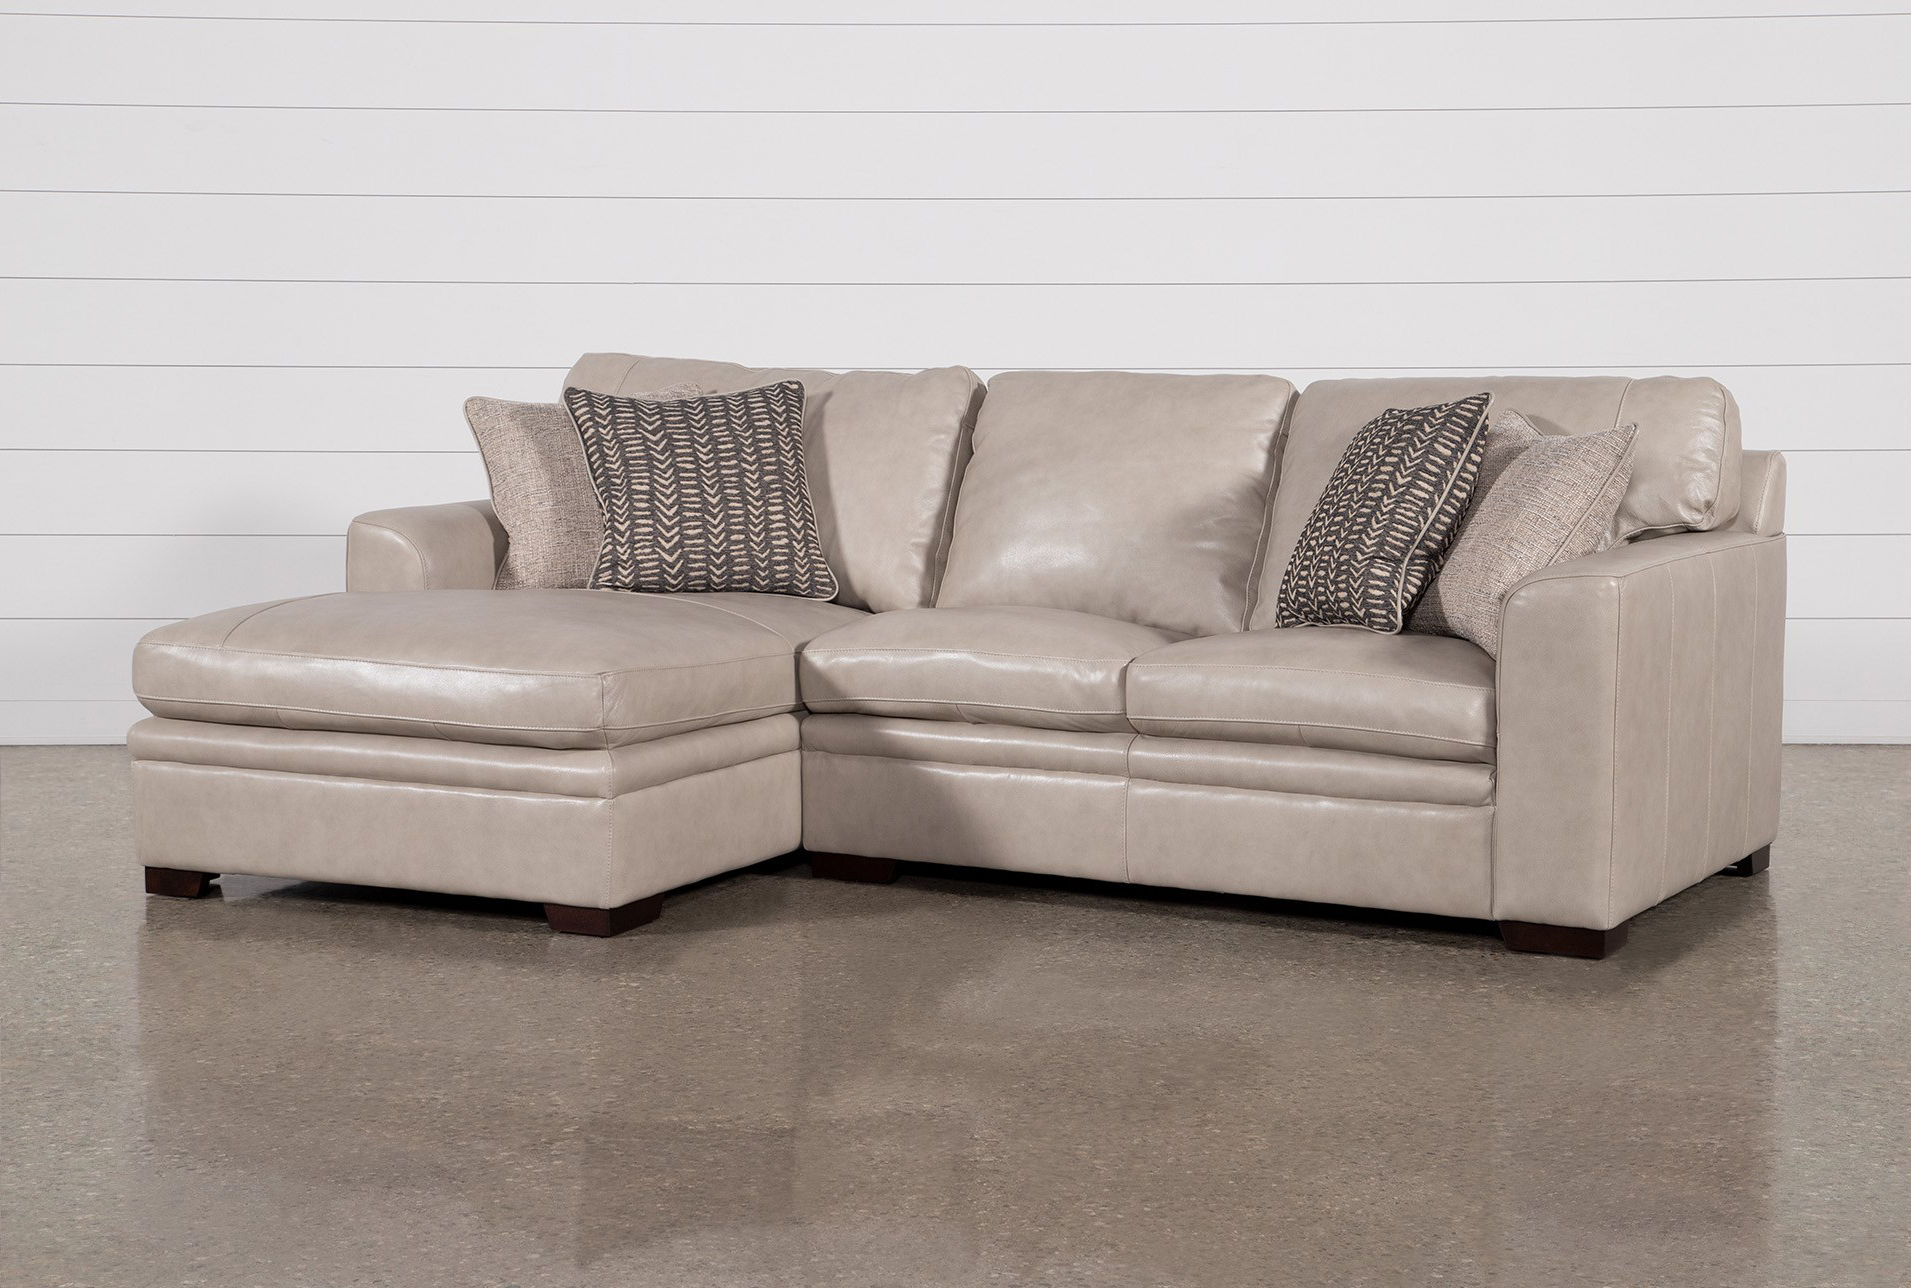 Greer Stone Leather 2 Piece 108 Sectional With Left Arm Facing Chaise Right Arm Facing Loveseat Living Spaces